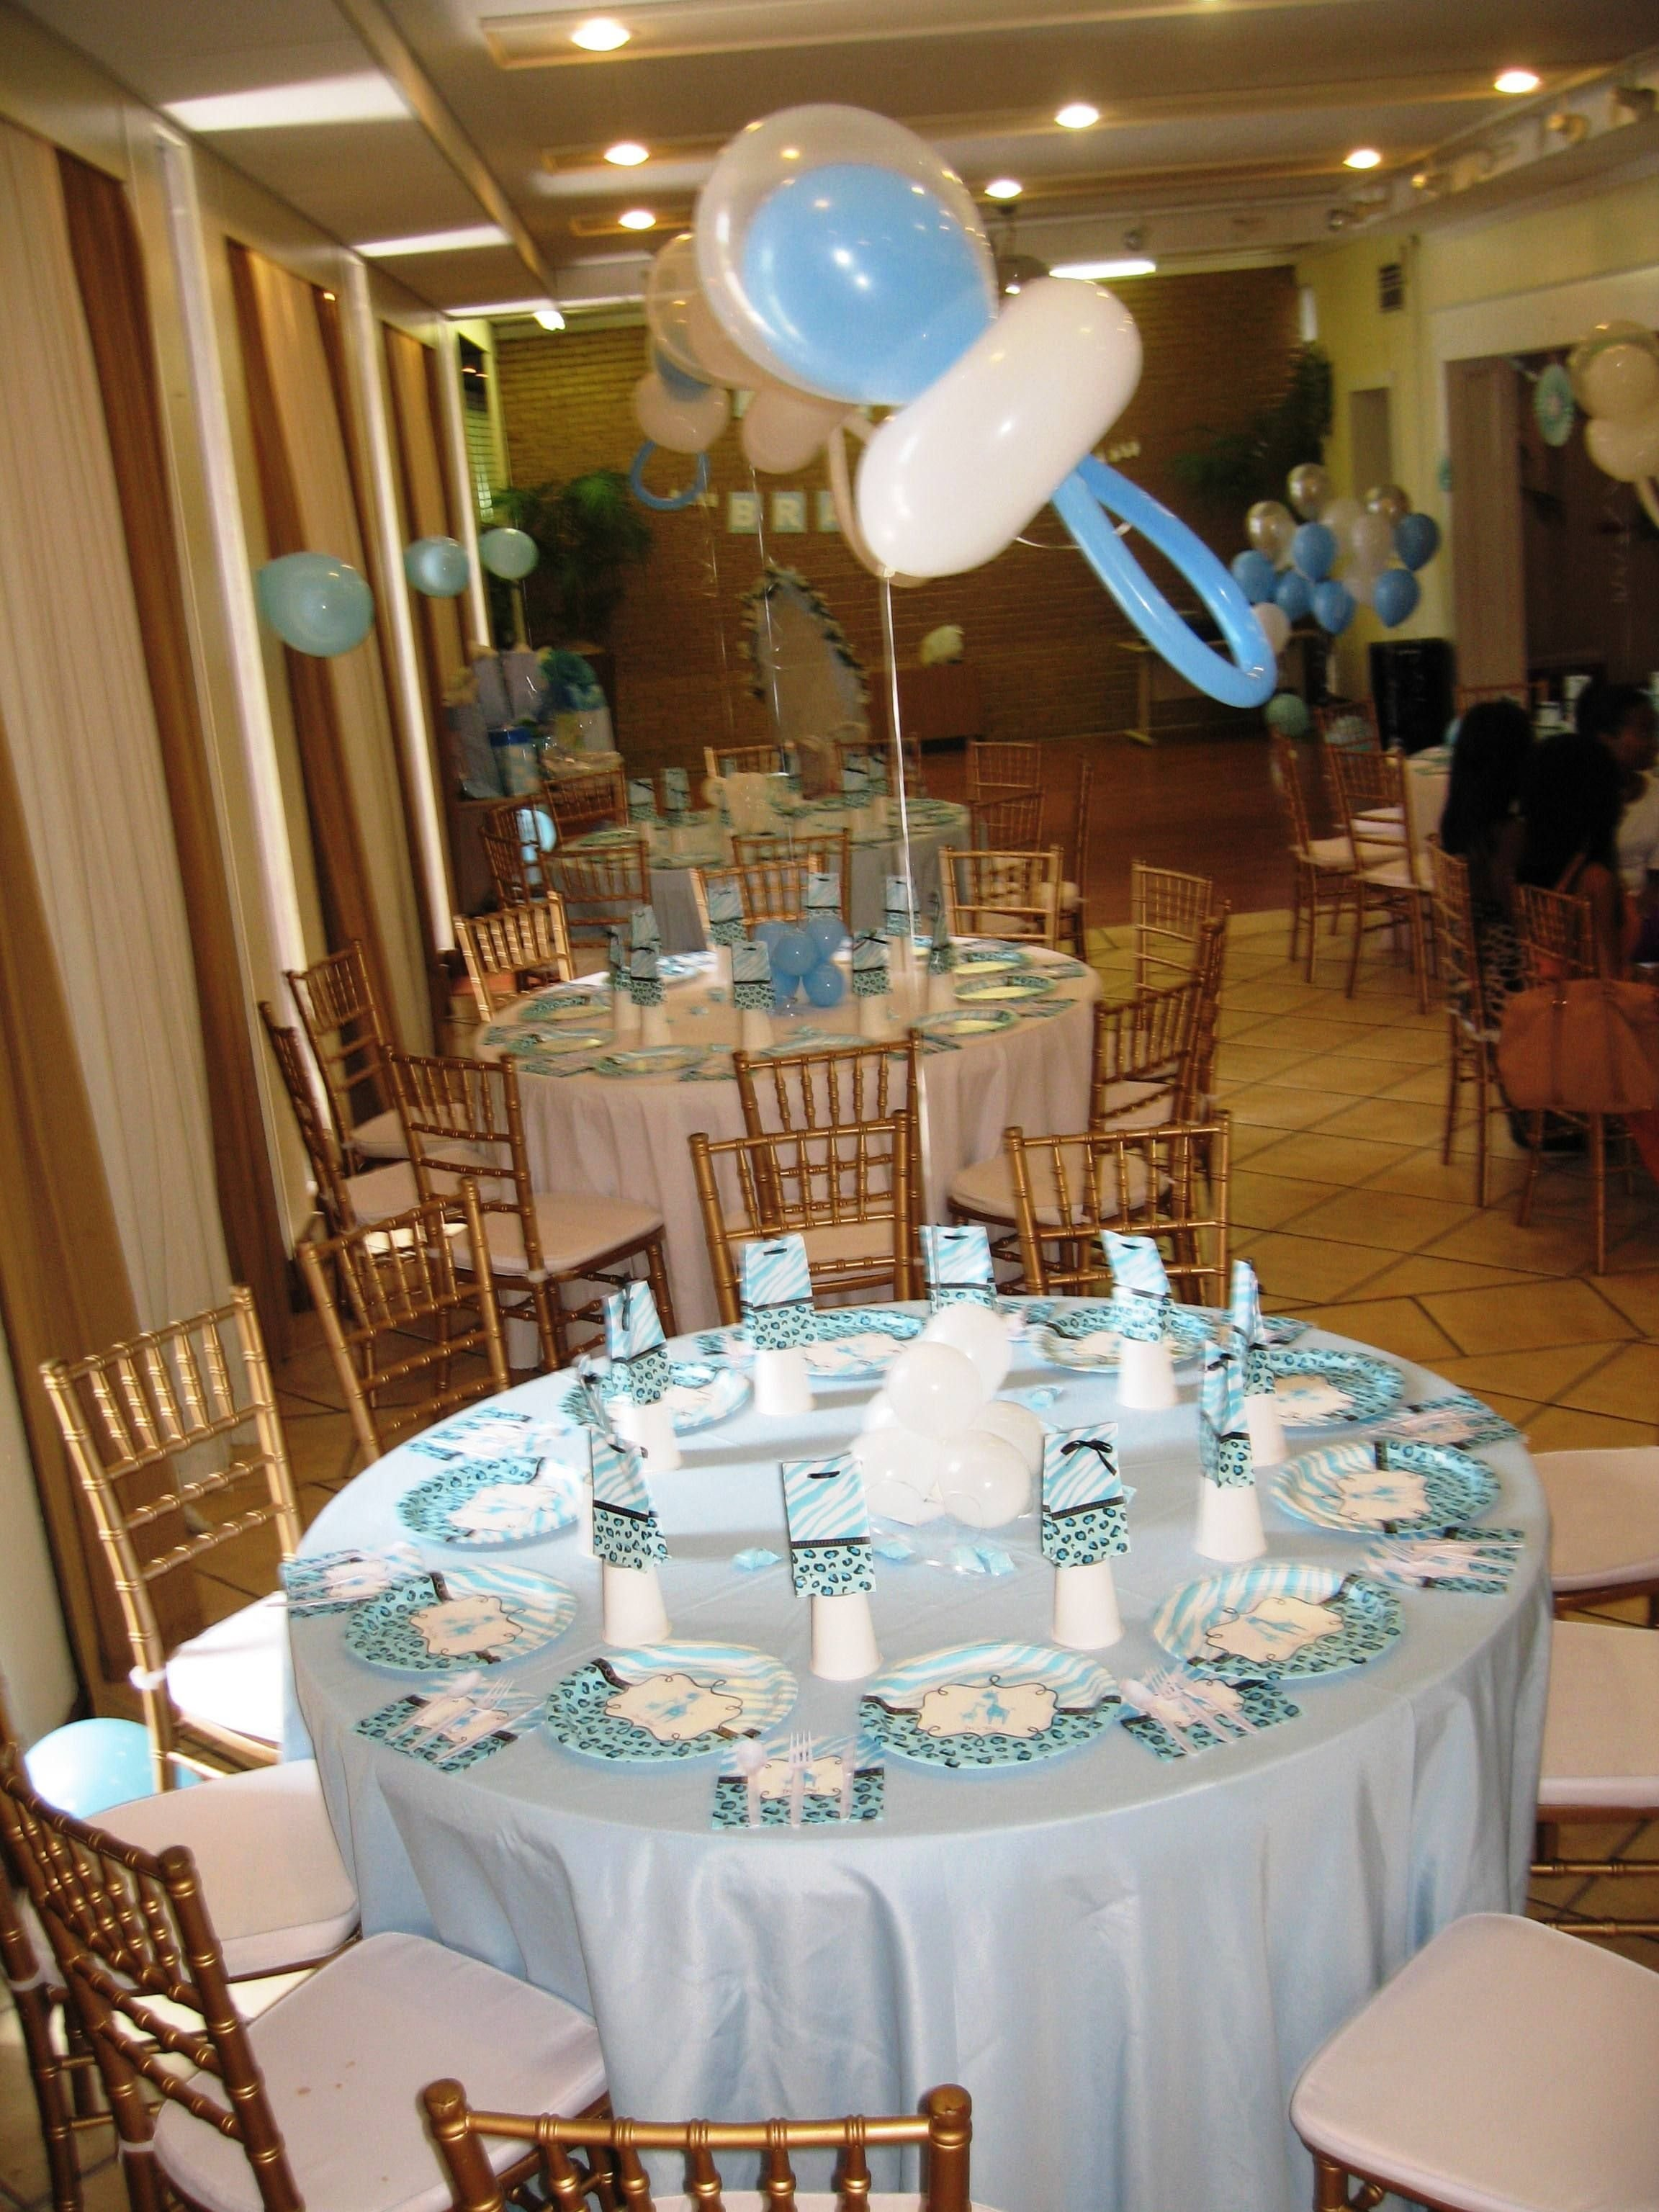 10 Attractive Decorating Ideas For Baby Shower baby shower table decor centerpieces table decor pinterest 3